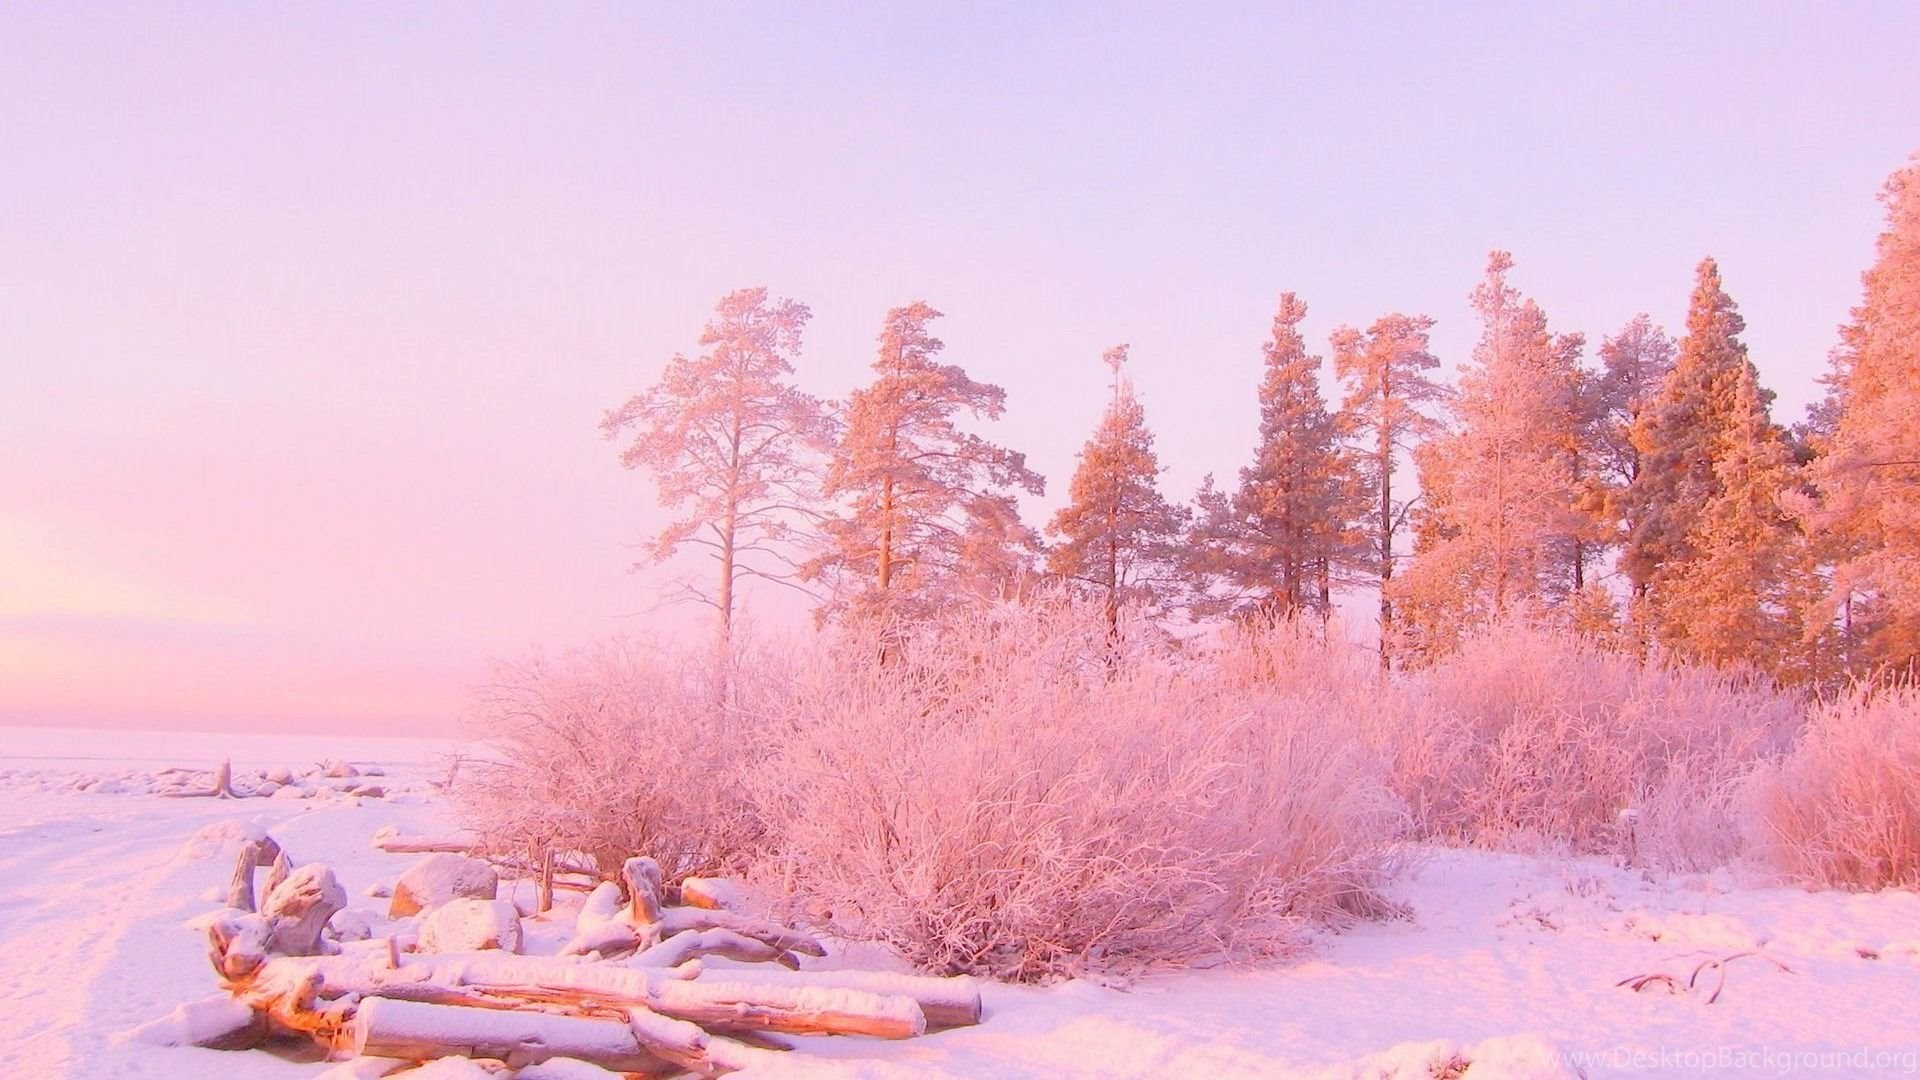 Pink Sunset Light Over Snowy Forest 1920x1080 HD Wallpapers And